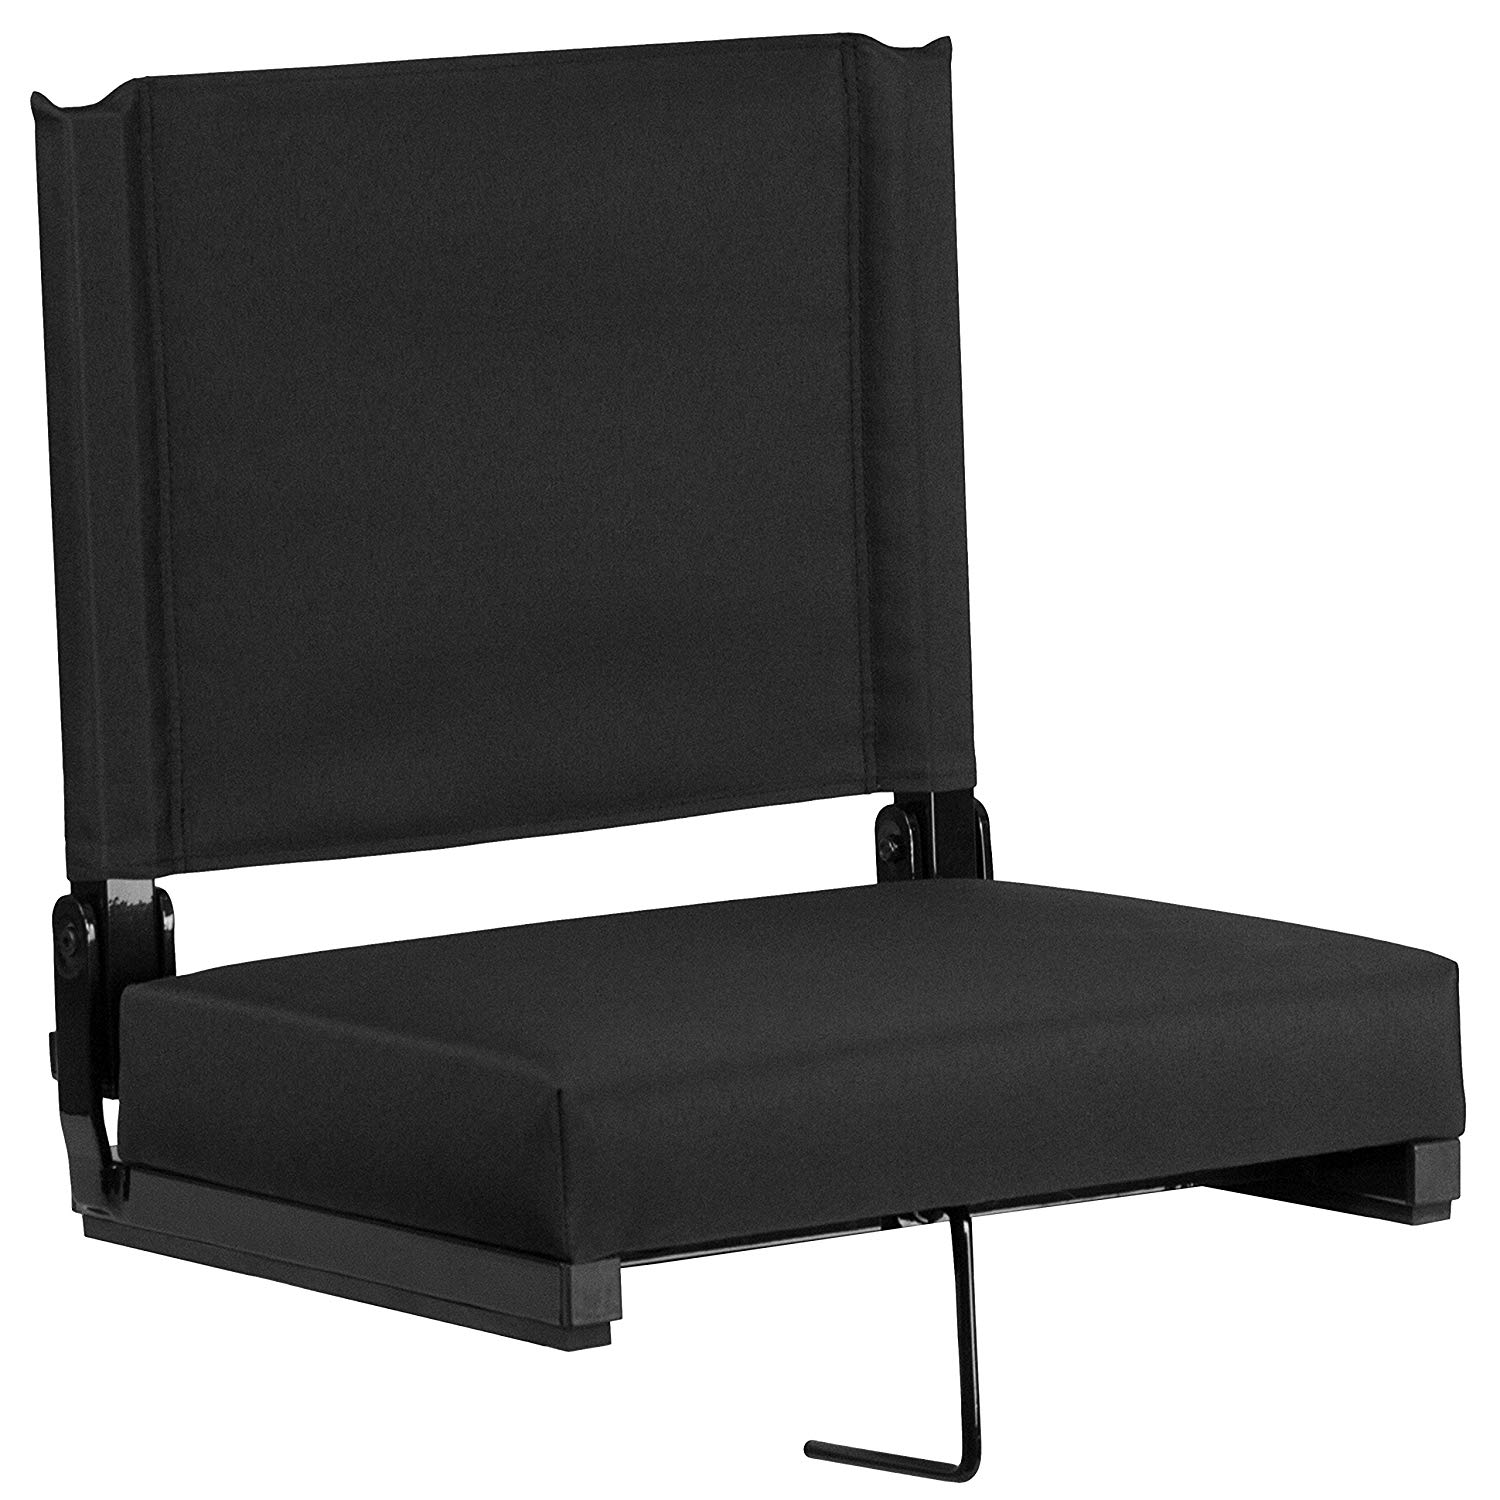 Flash Furniture Grandstand Comfort Seats by Flash with Ultra-Padded Seat in Black- Bleacher Stadium Seats